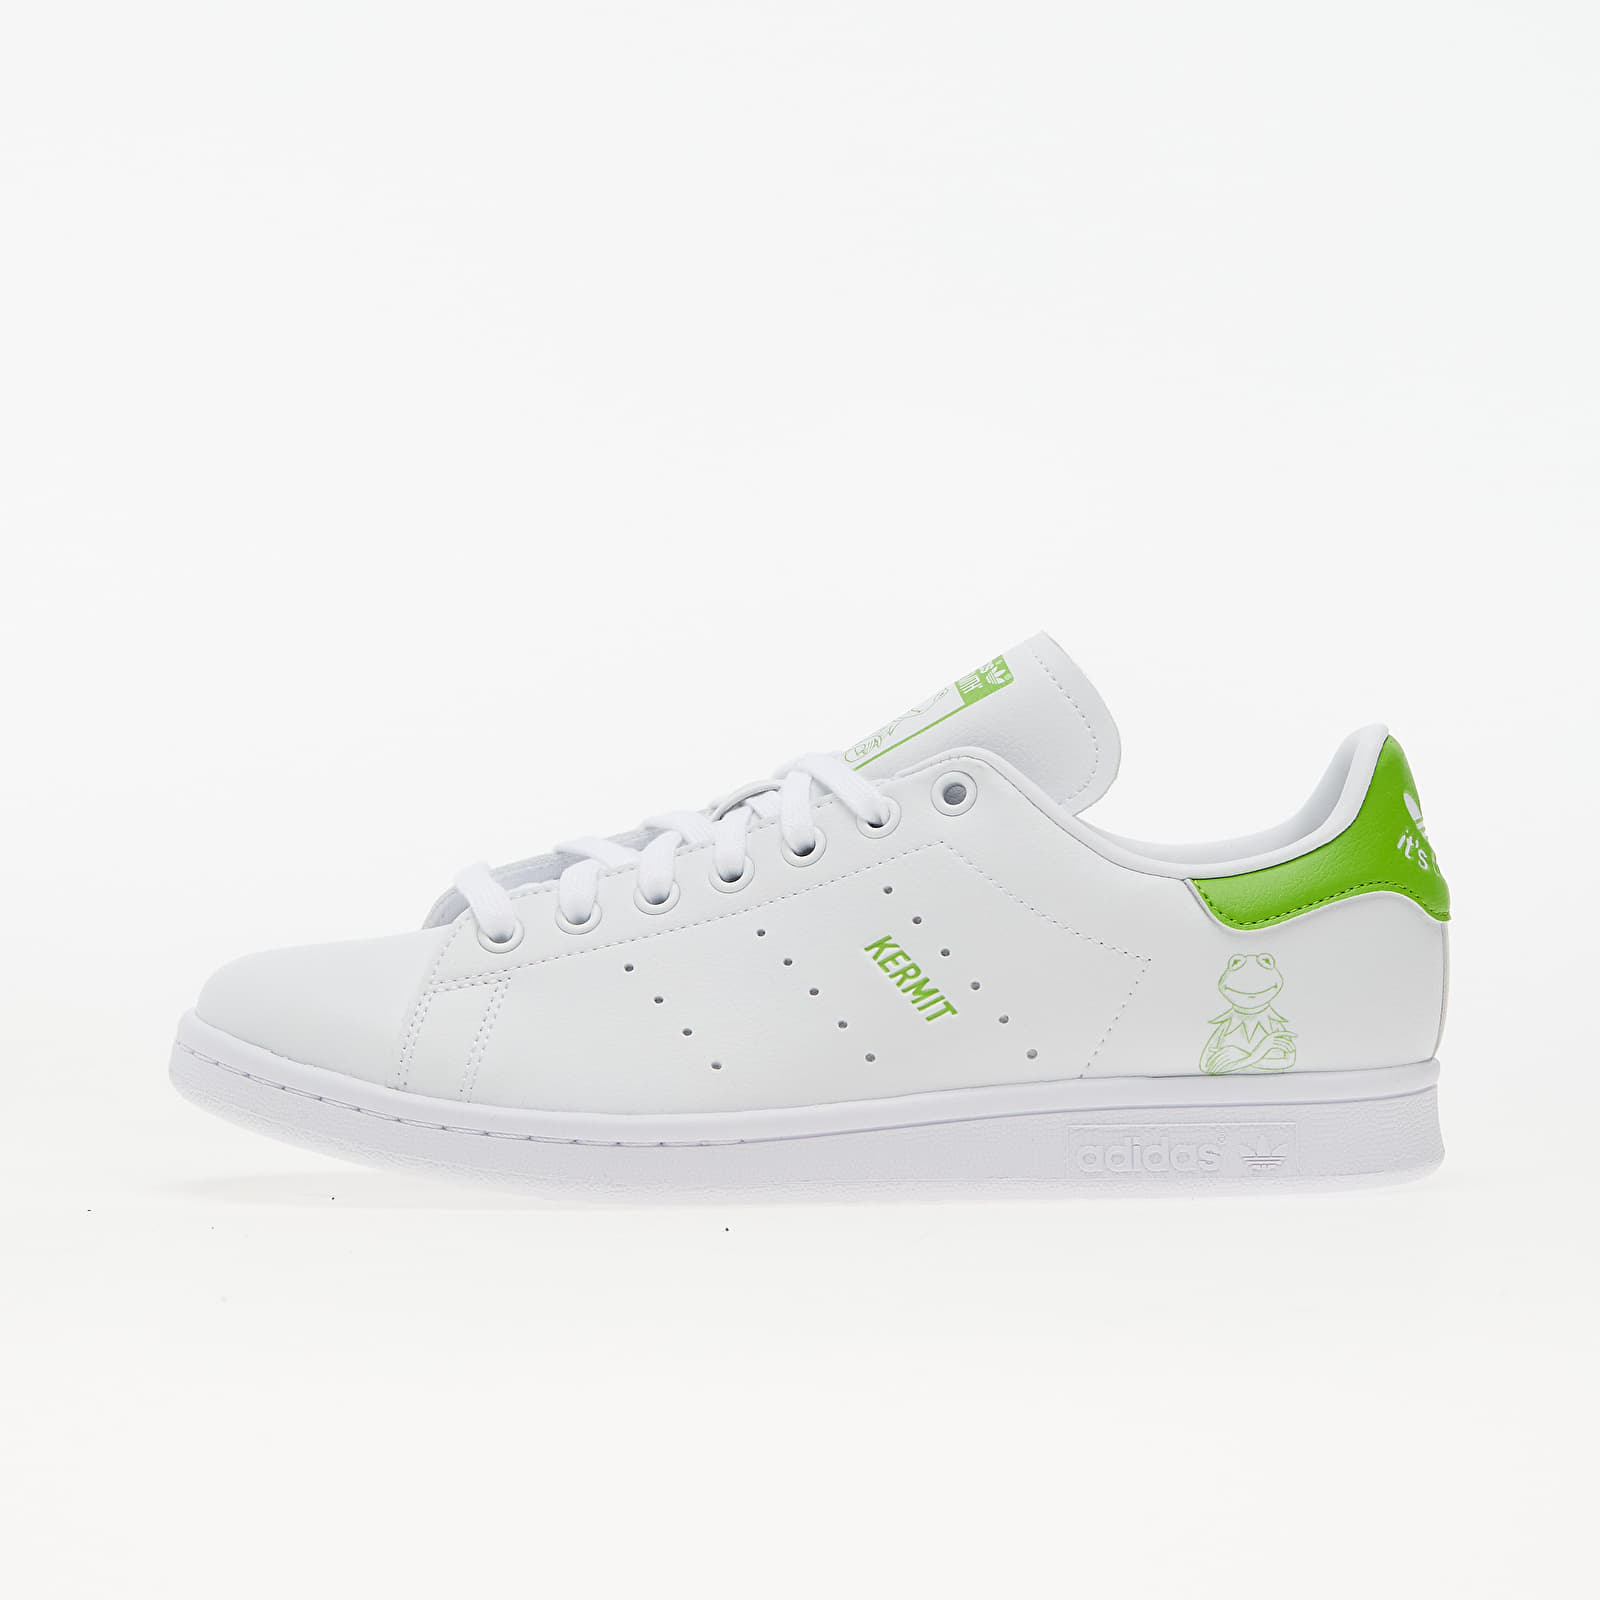 adidas Disney Stan Smith Ftw White/ Phanton/ Ftw White EUR 44